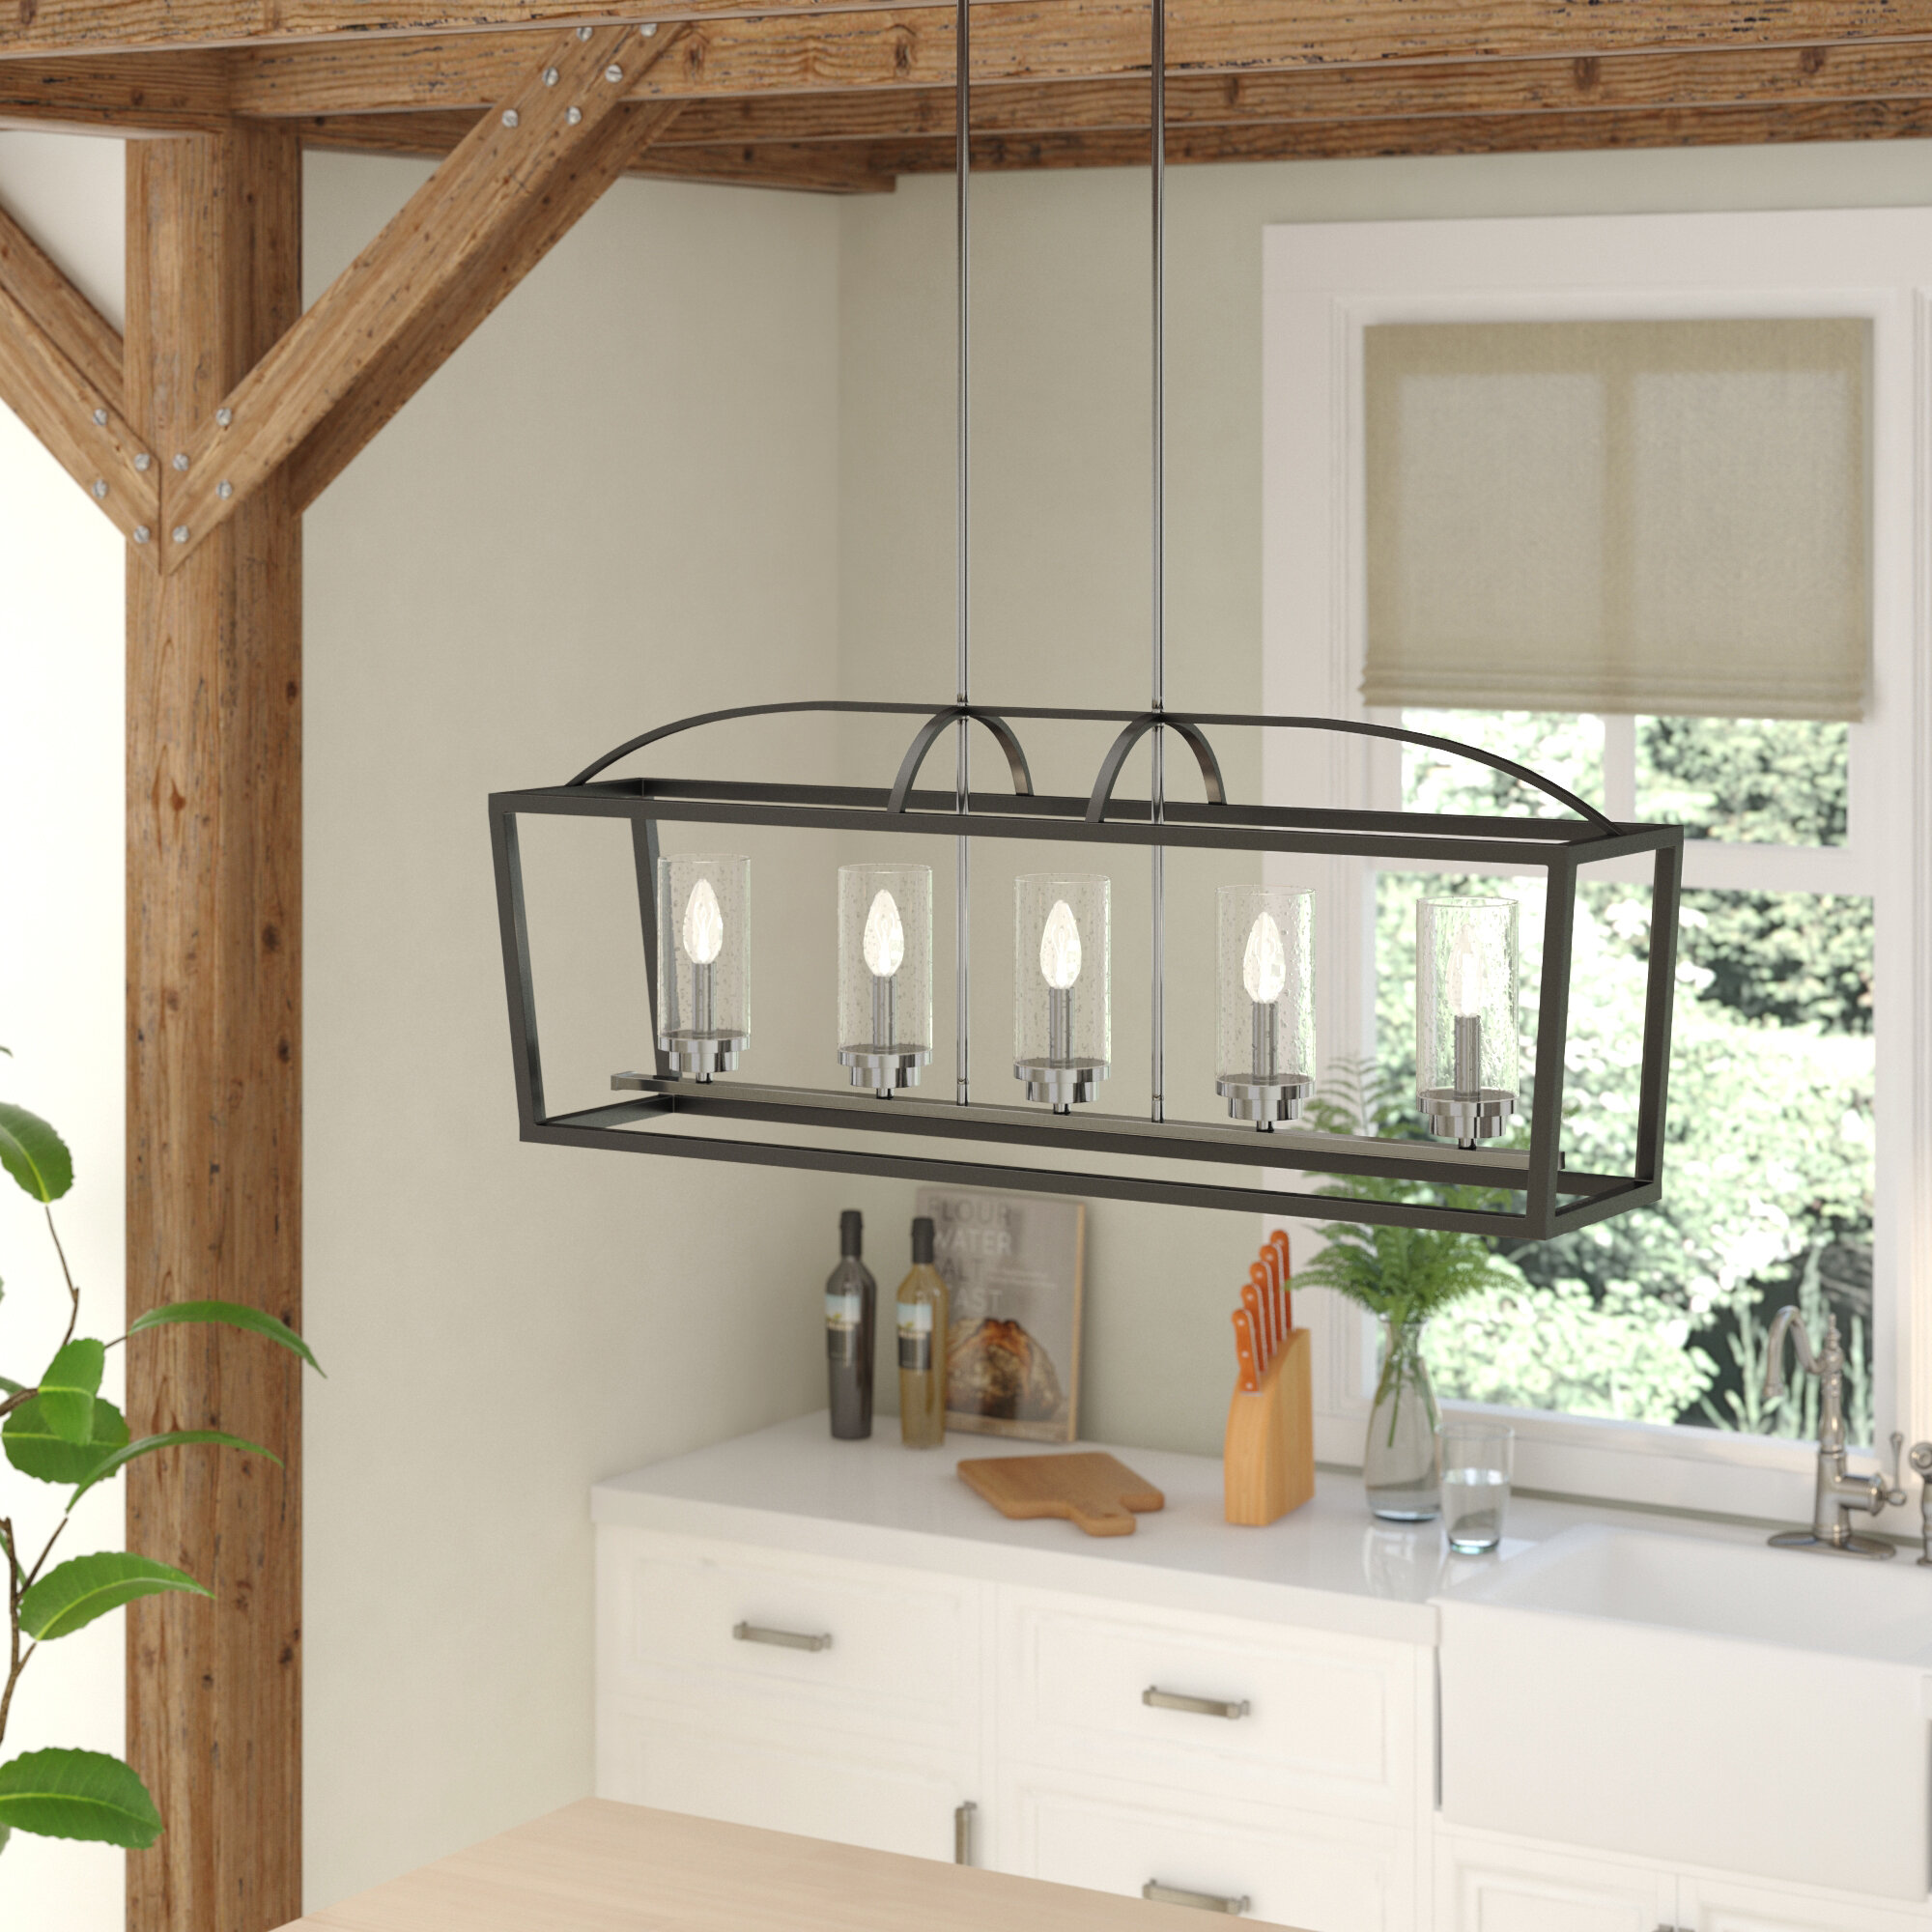 Etonnant Laurel Foundry Modern Farmhouse Luna 5 Light Kitchen Island Pendant U0026  Reviews | Wayfair